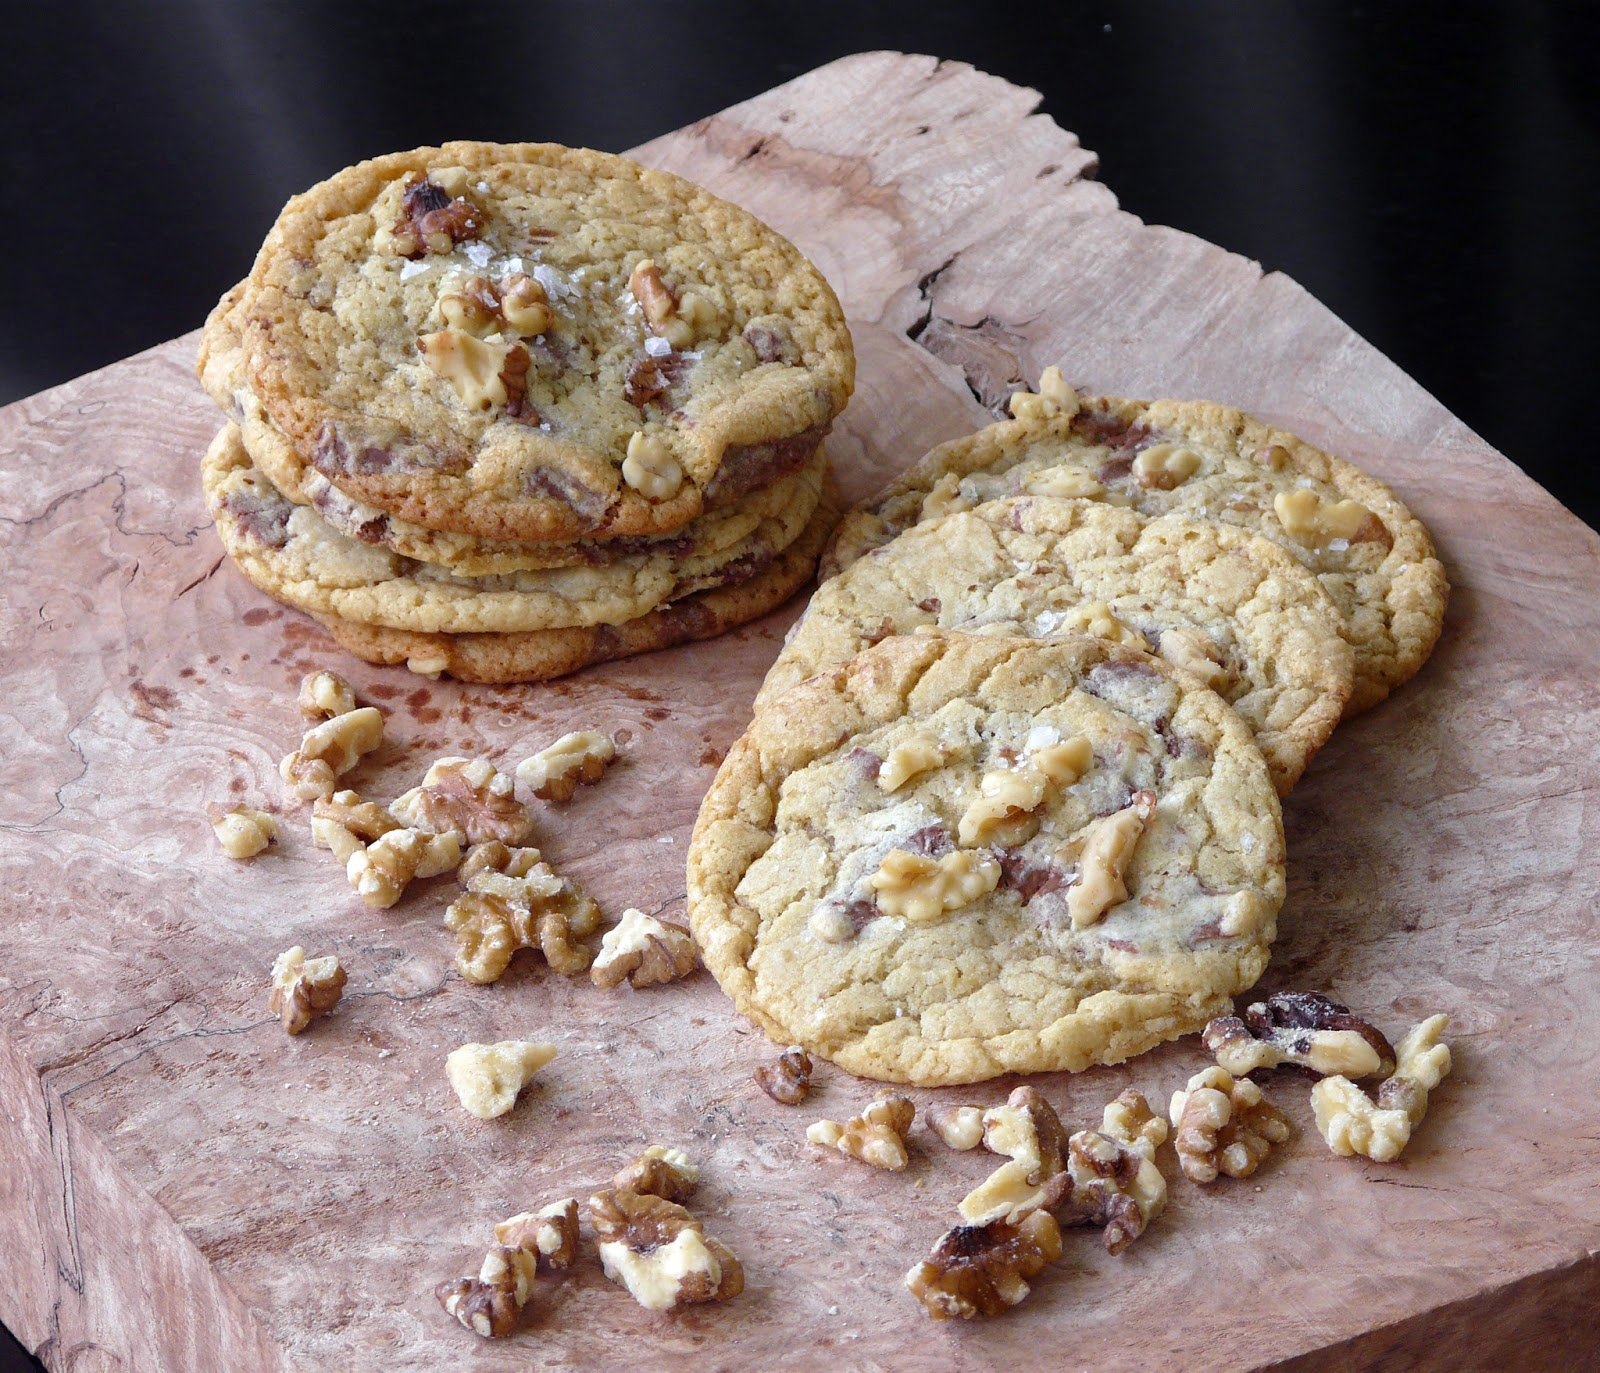 Thibeault's Table: Jacques Torres's Chocolate Chip Cookies